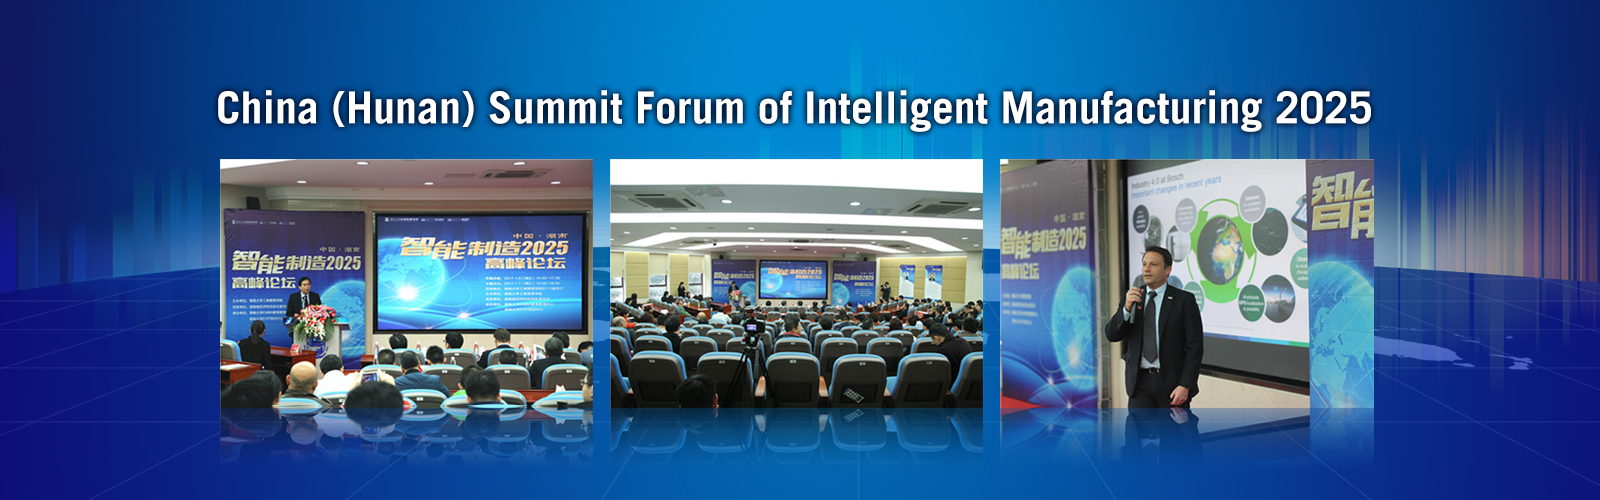 China (Hunan) Summit Forum of Intelligent Manufacturing 2025